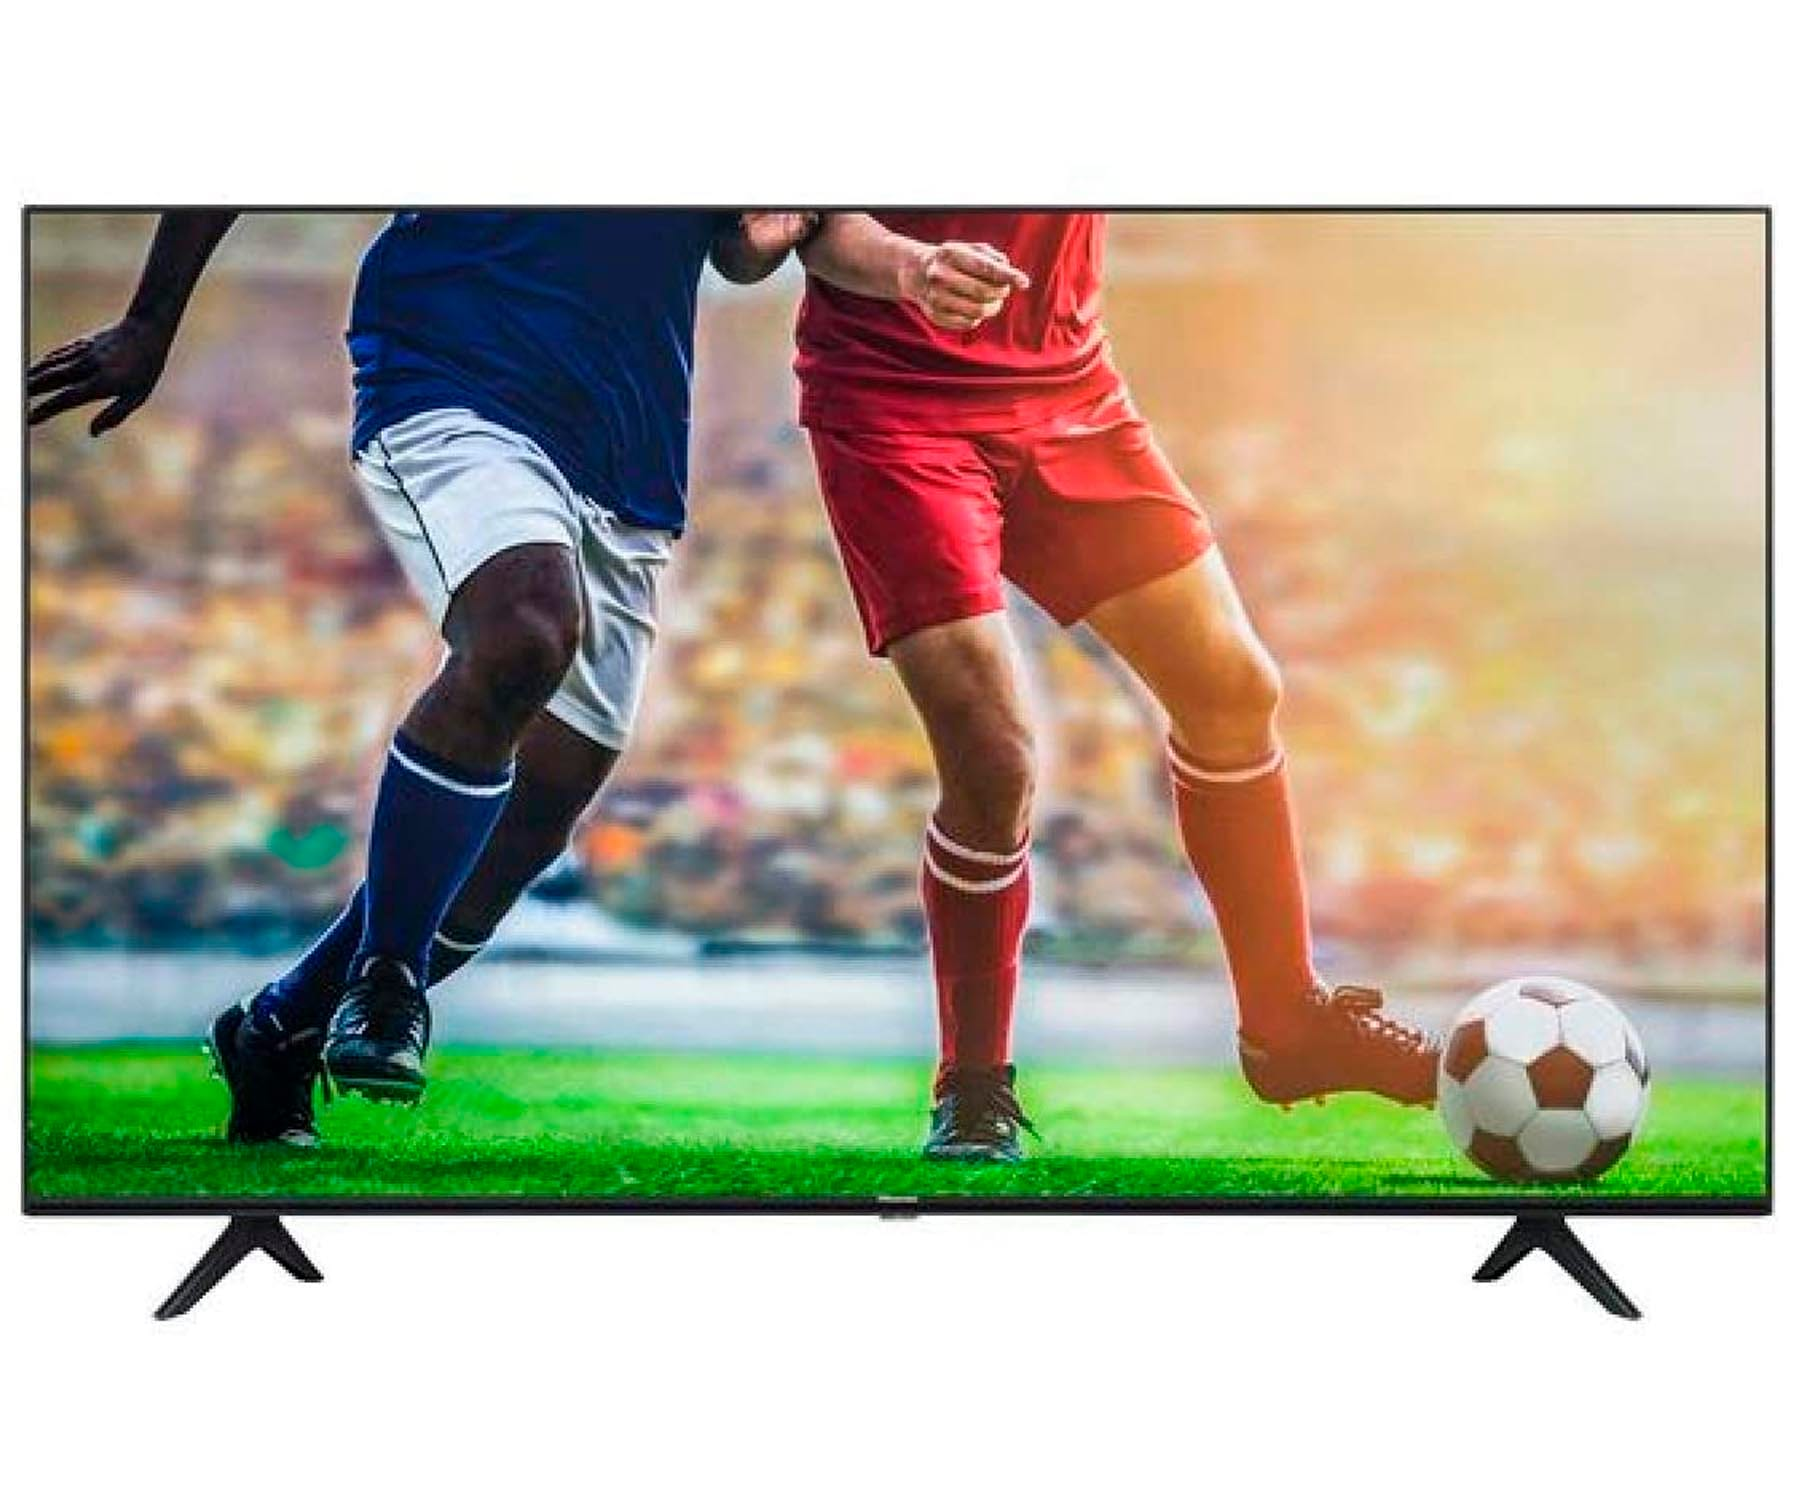 HISENSE H58A7100F TELEVISOR 58'' SMART TV LED 4K UHD HDR 1600PCI CI+ HDMI USB  BLUETOOTH